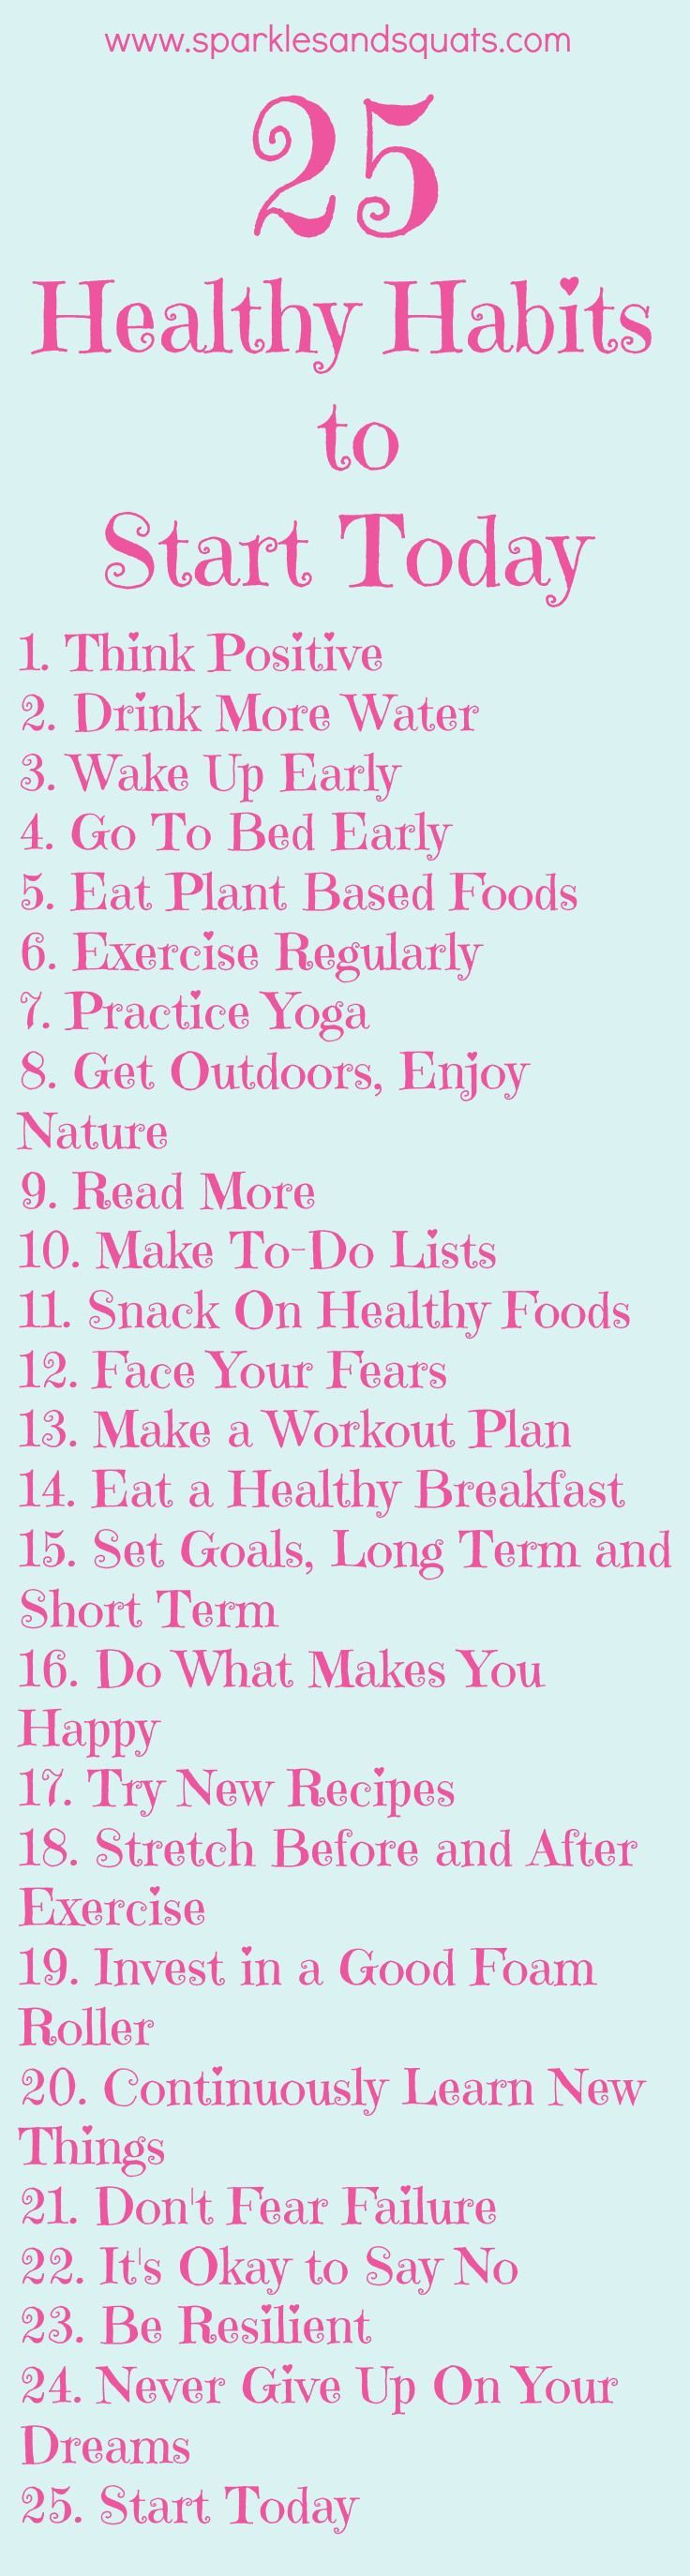 25-Healthy-Habits-to-Start-Today1.jpg (736×2748):